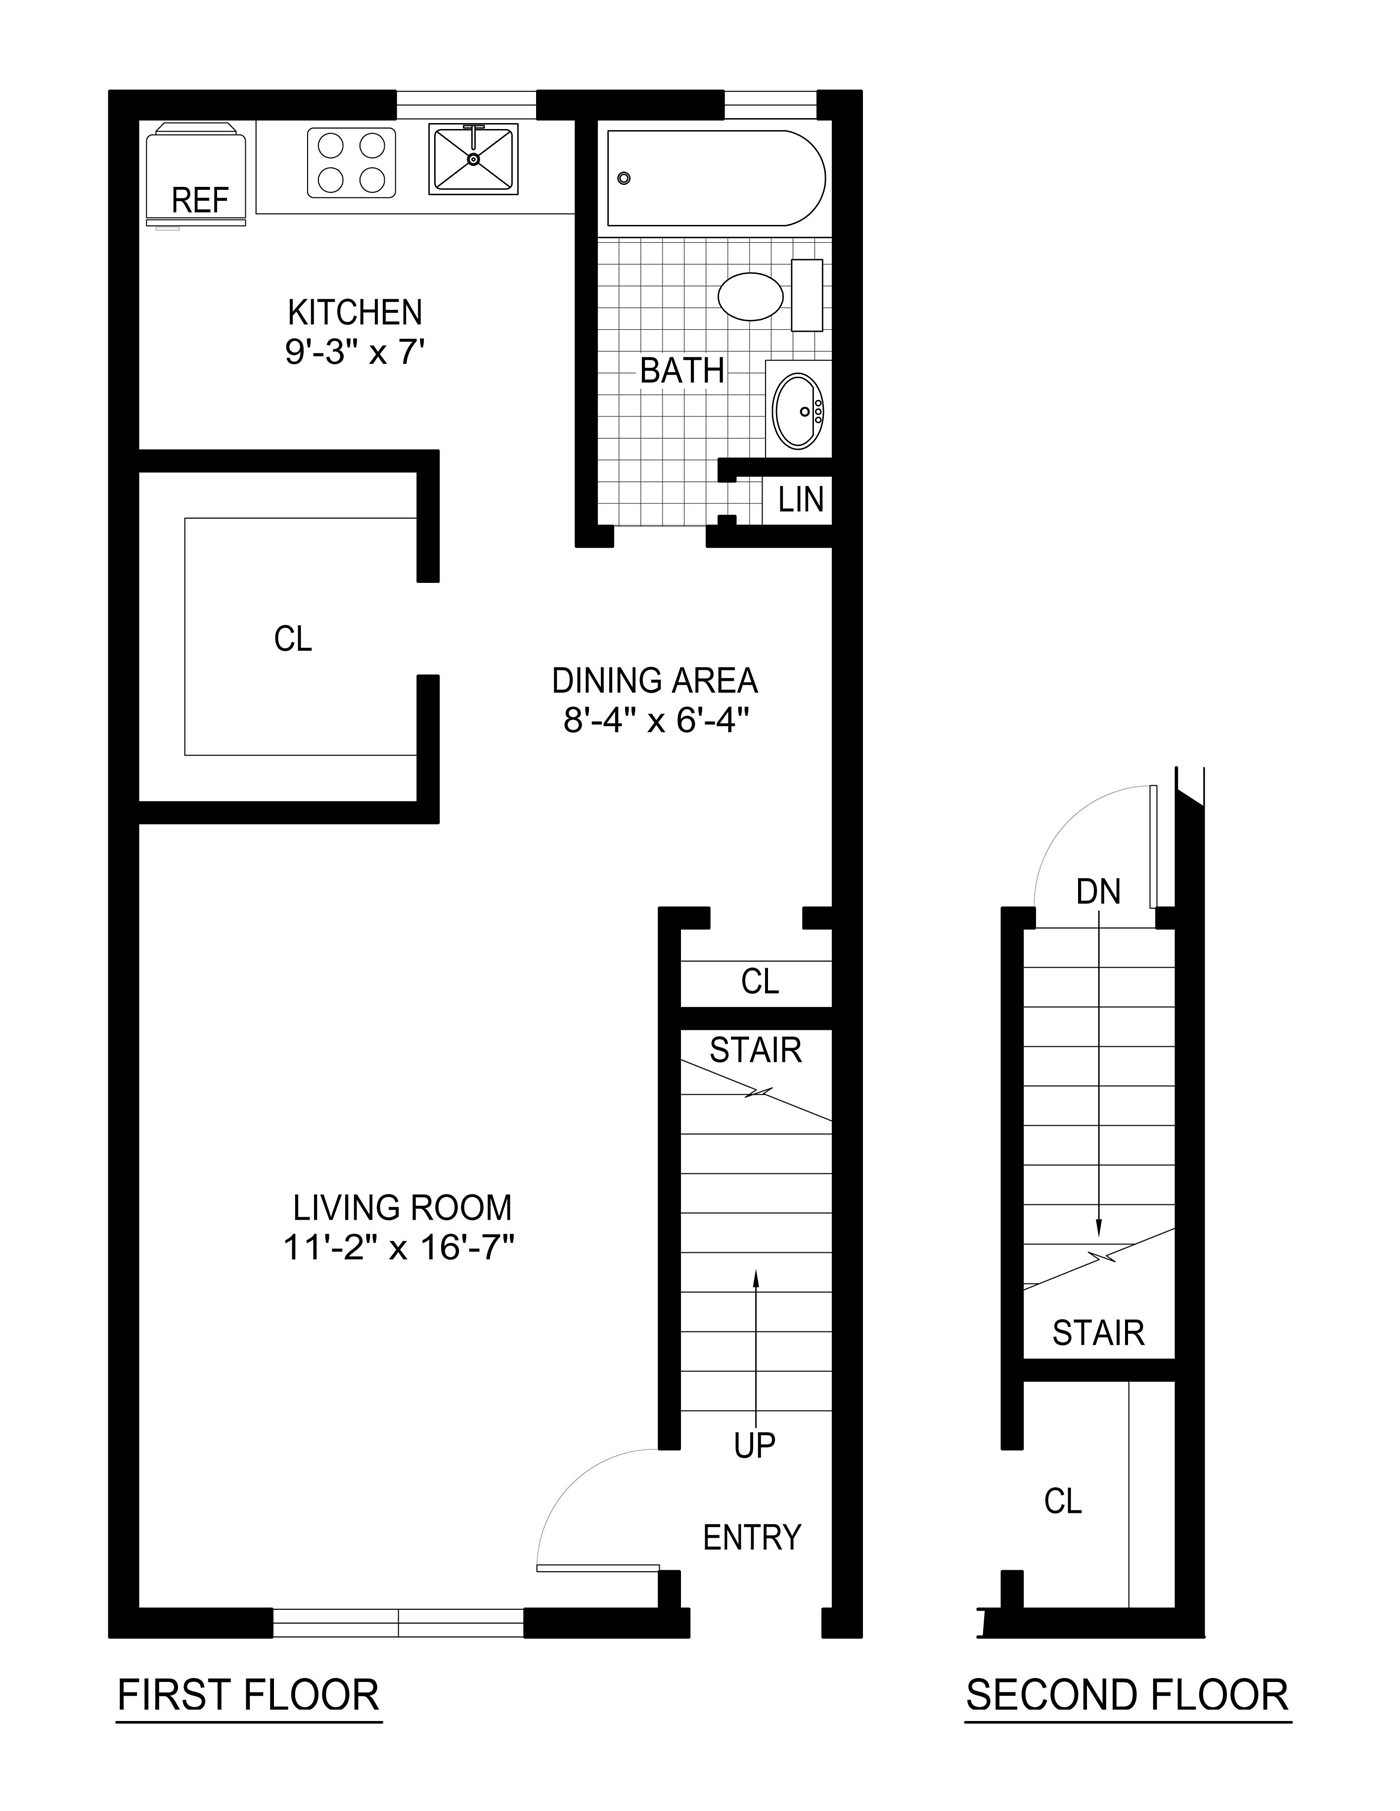 apartment floor plans clipart panda free clipart images